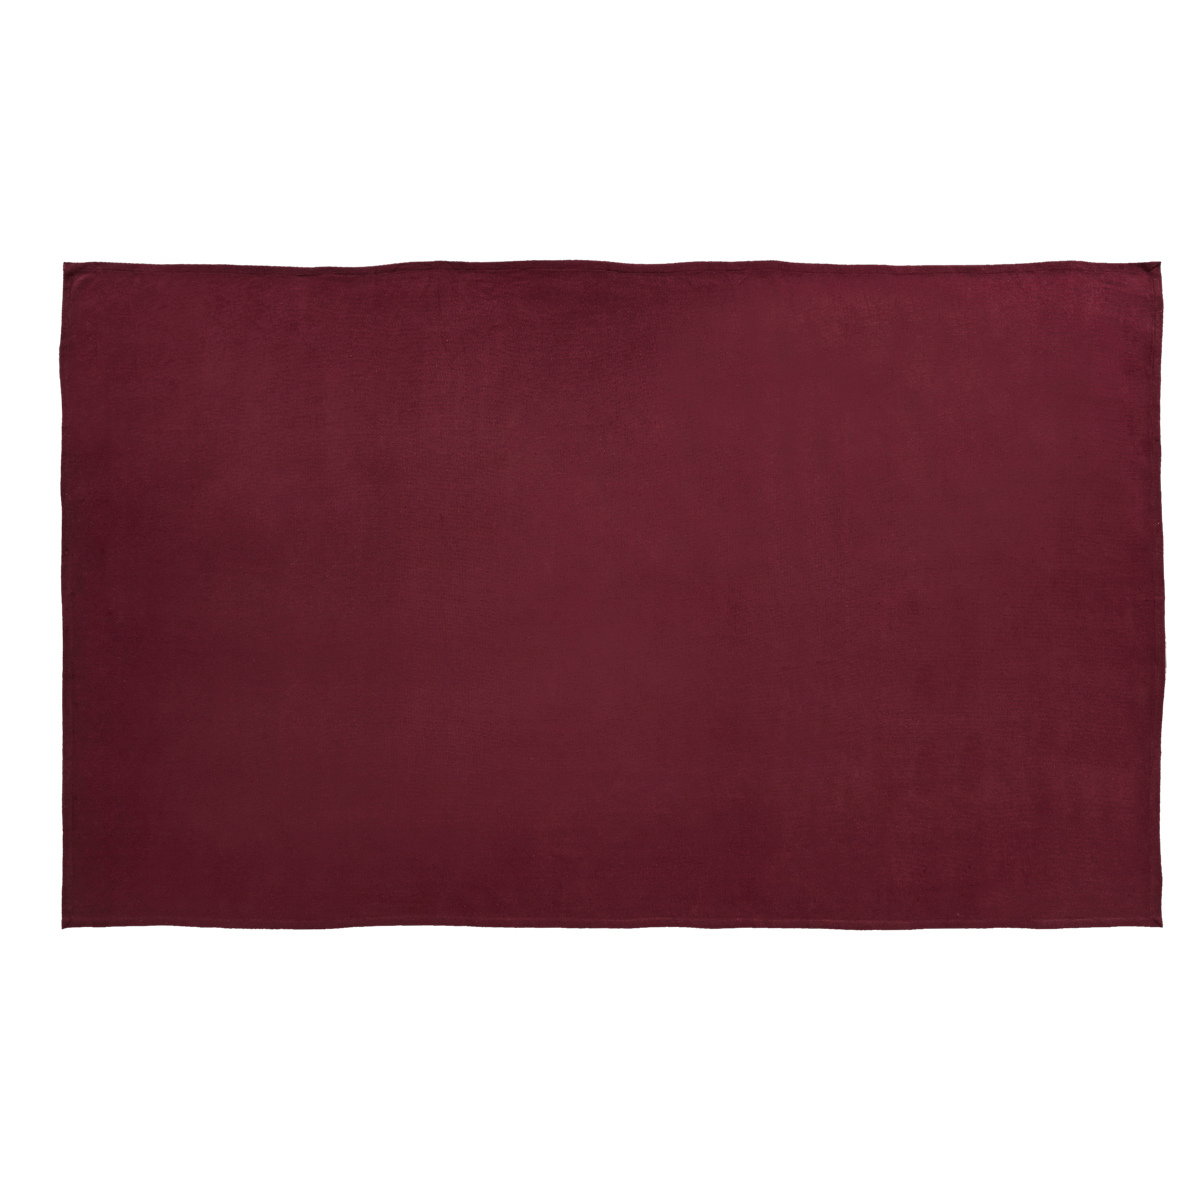 BURLAP MERLOT Table Cloth - 60x102 - Country Farmhouse - VHC Brands